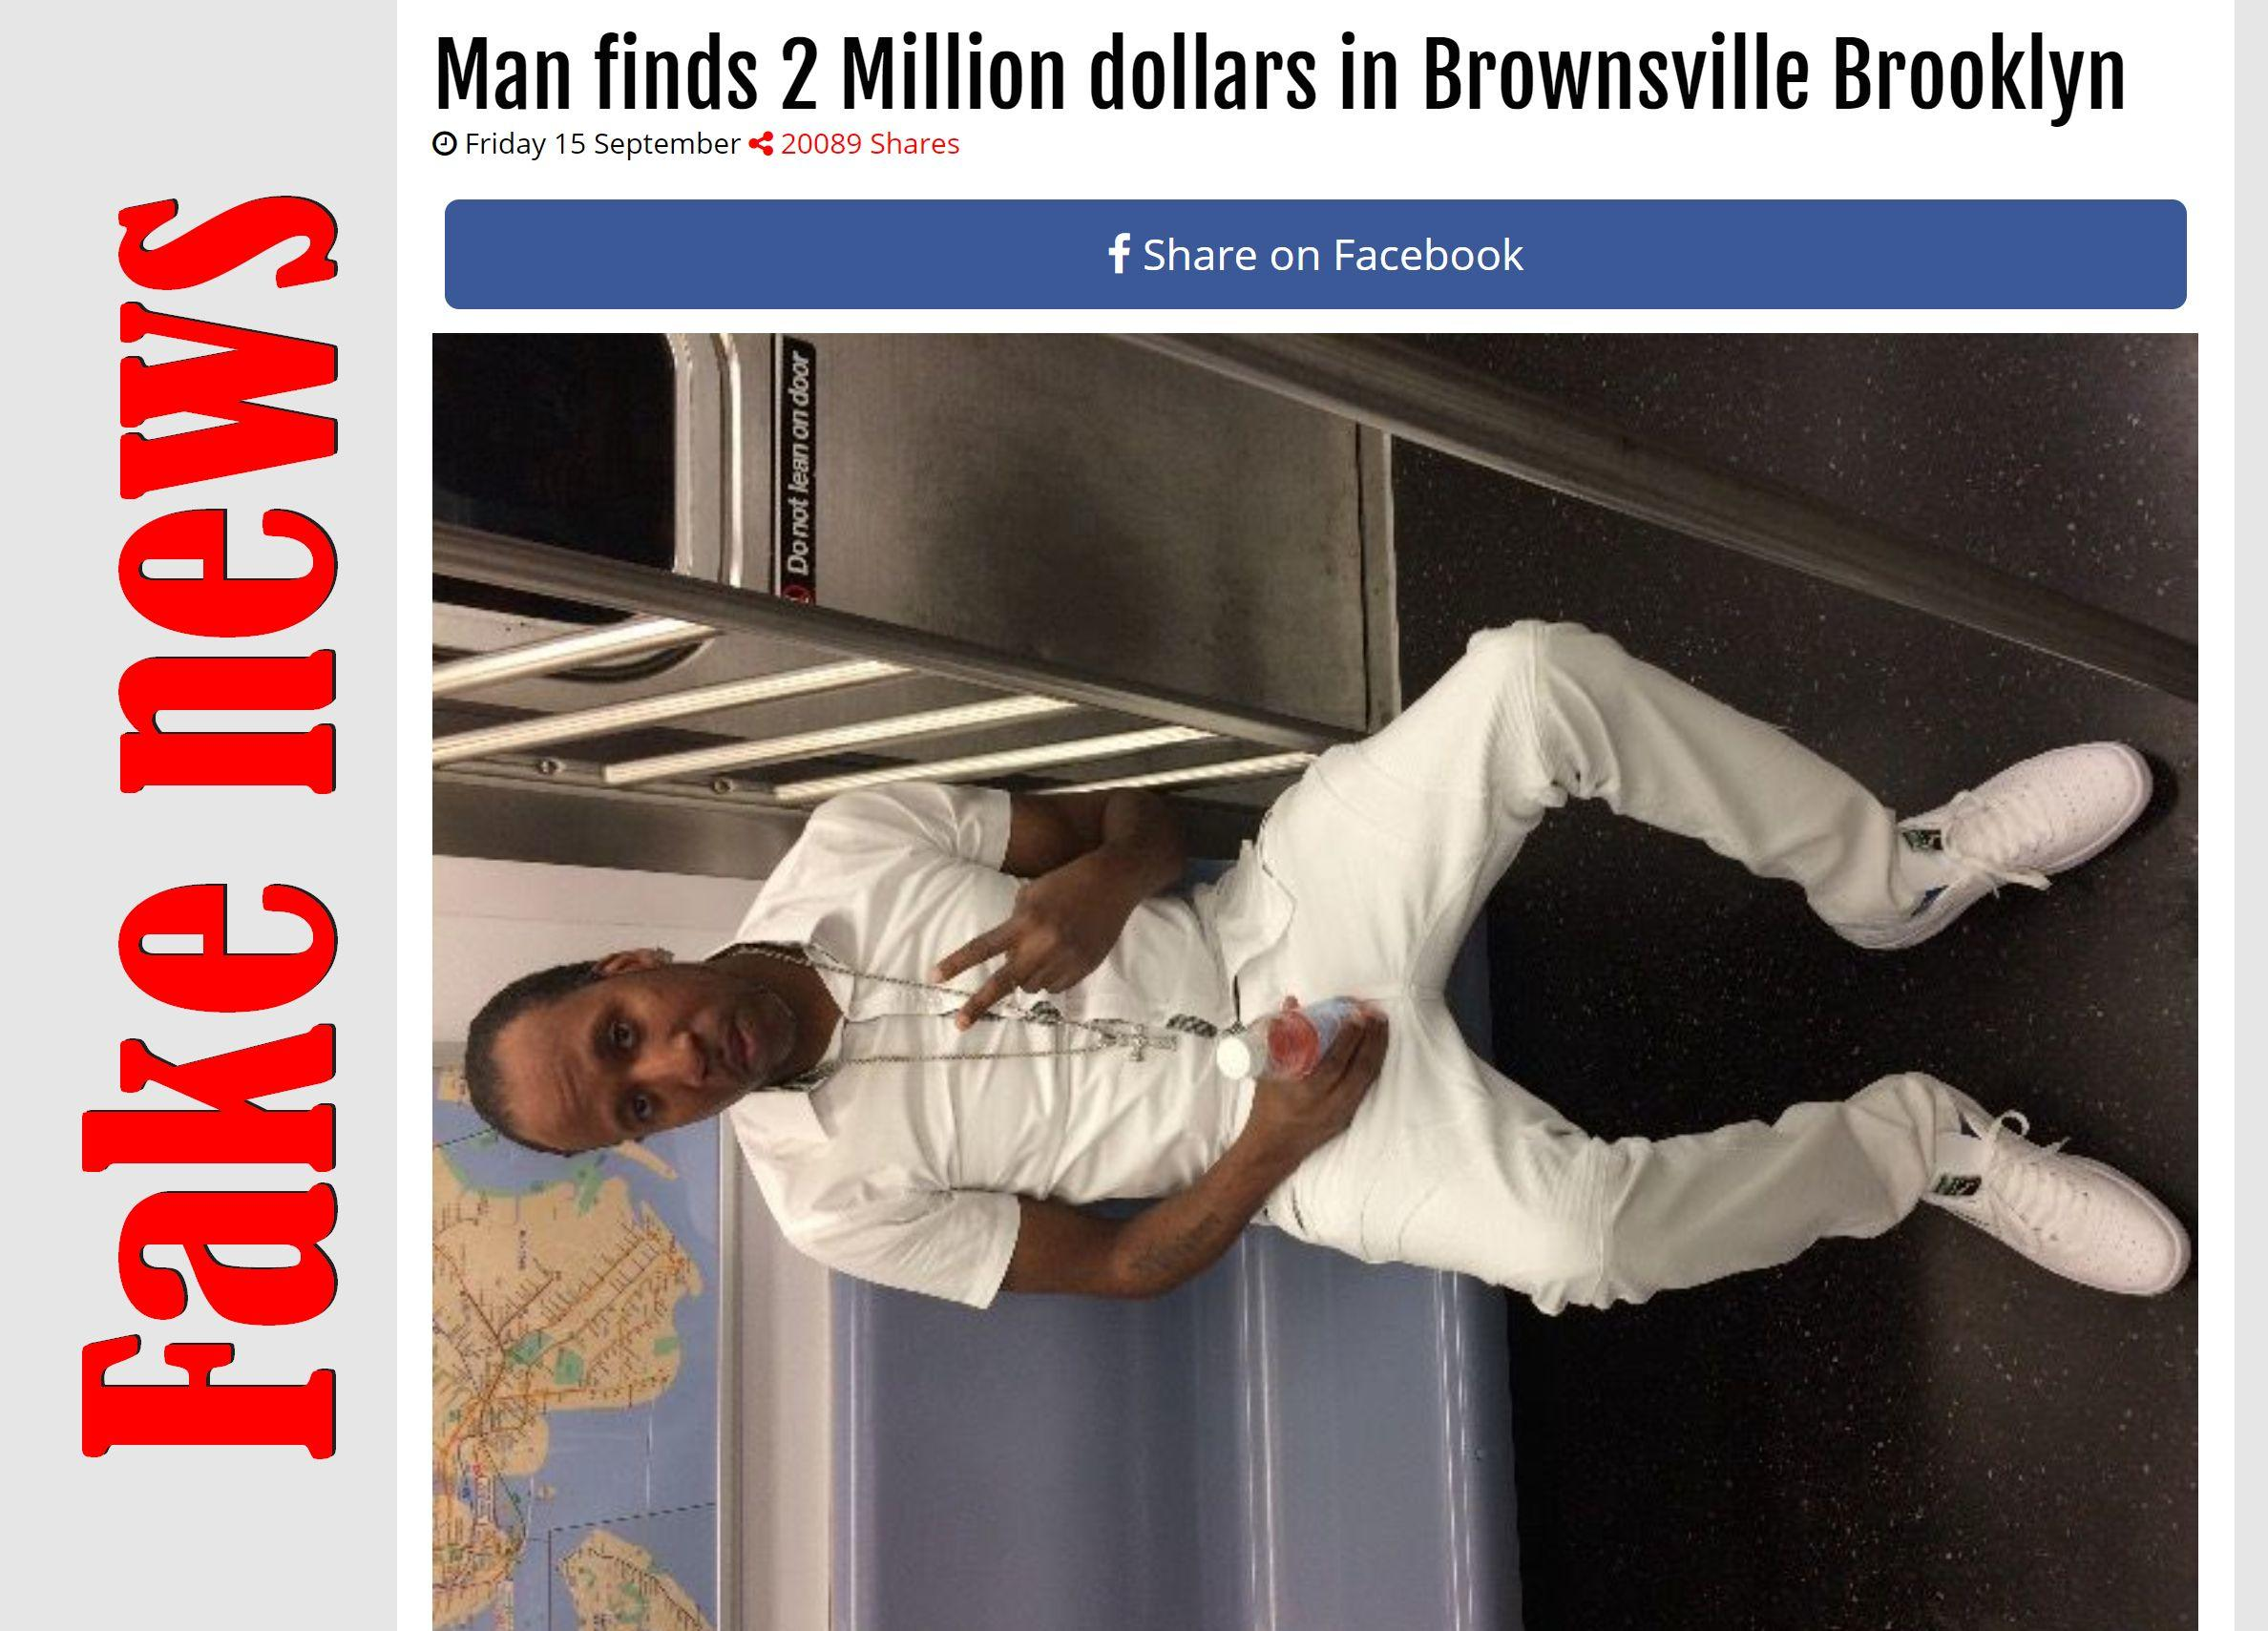 Fake News: Man Did NOT Find 2 Million Dollars In Brownsville Brooklyn